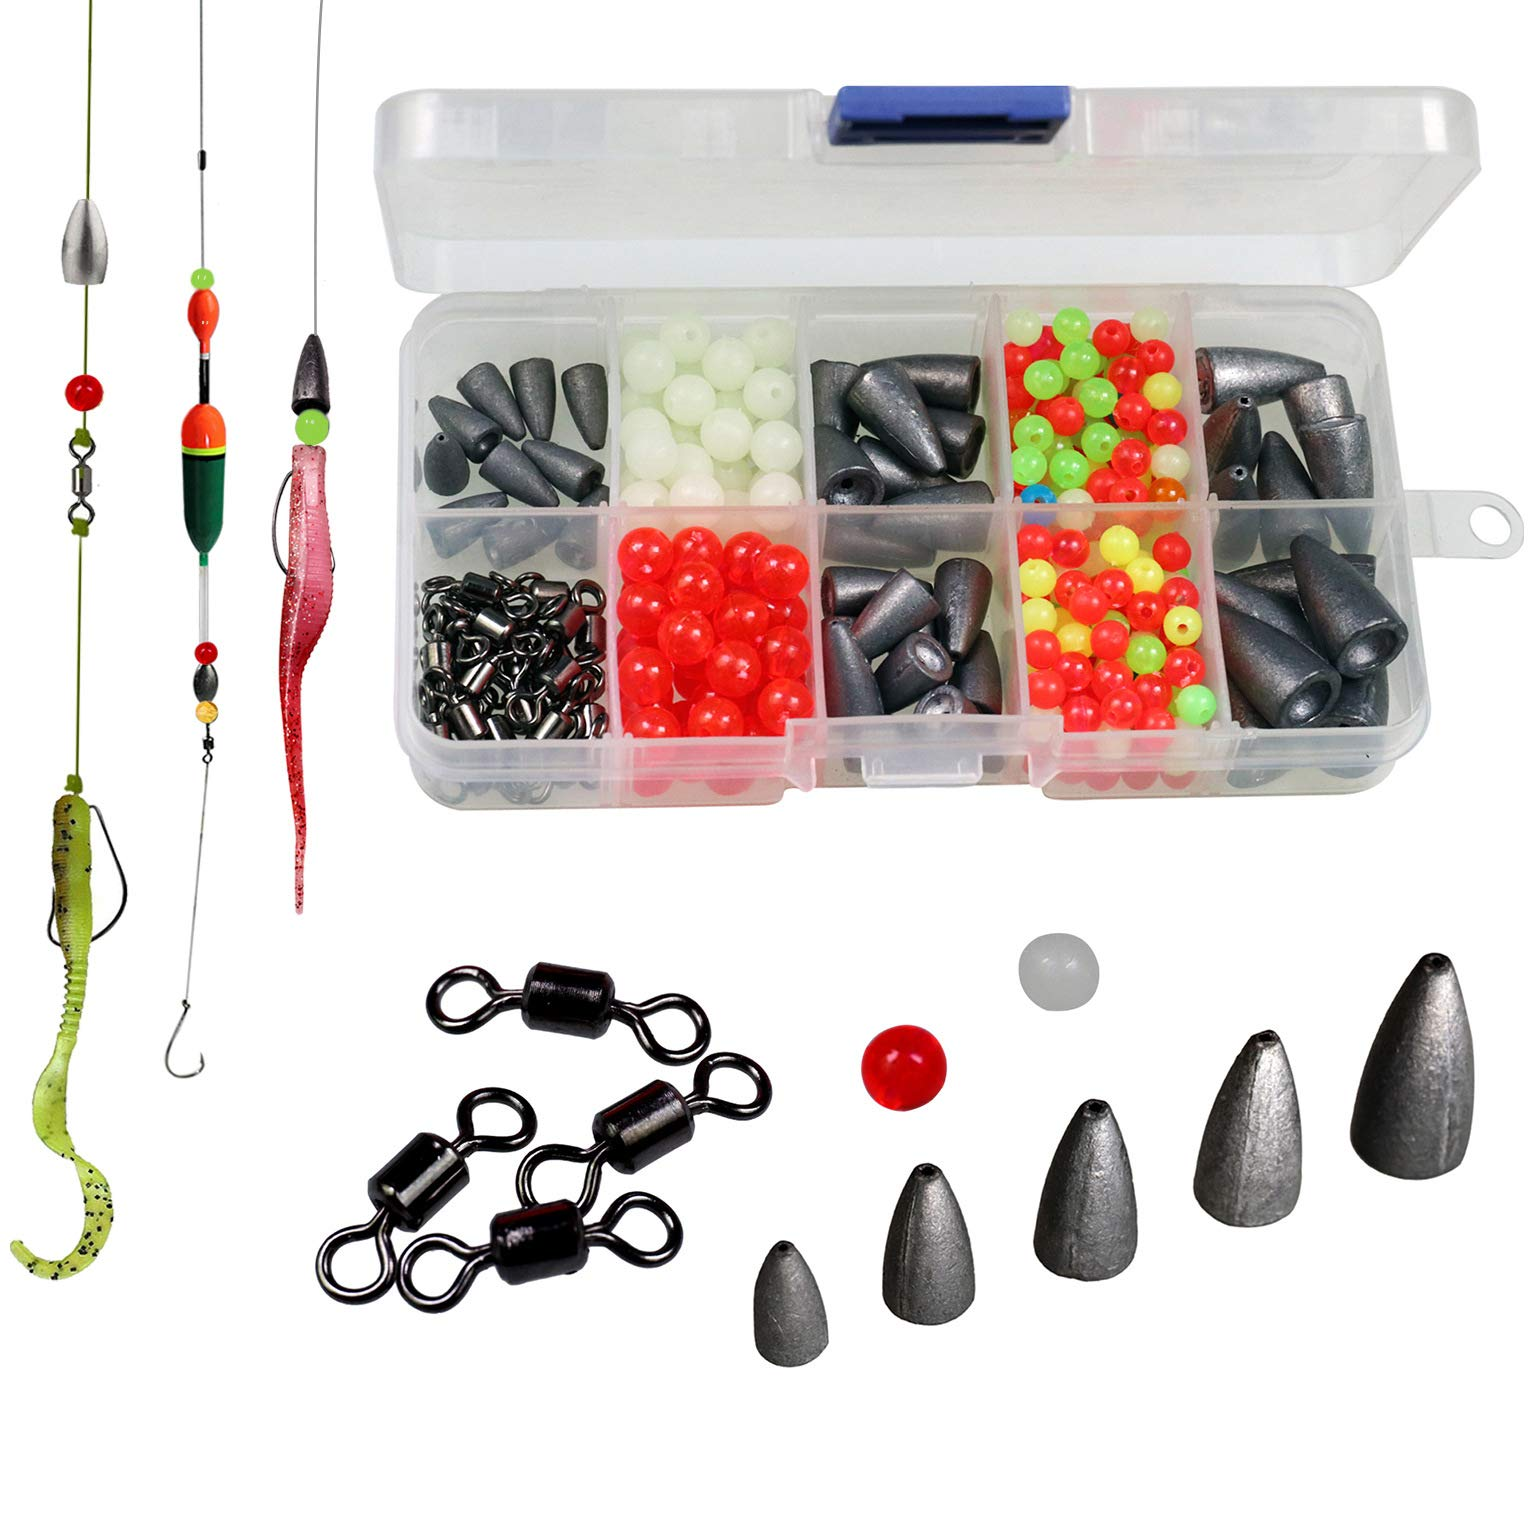 thkfish Carolina Rig Texas Rig Bass Fishing Bullet Weights for Fishing Sinkers Hooks Rolling Barrel Fishing Swivels Beads Ring with Plastic Box Texas and Carolina Rig DIY KIT 339pcs